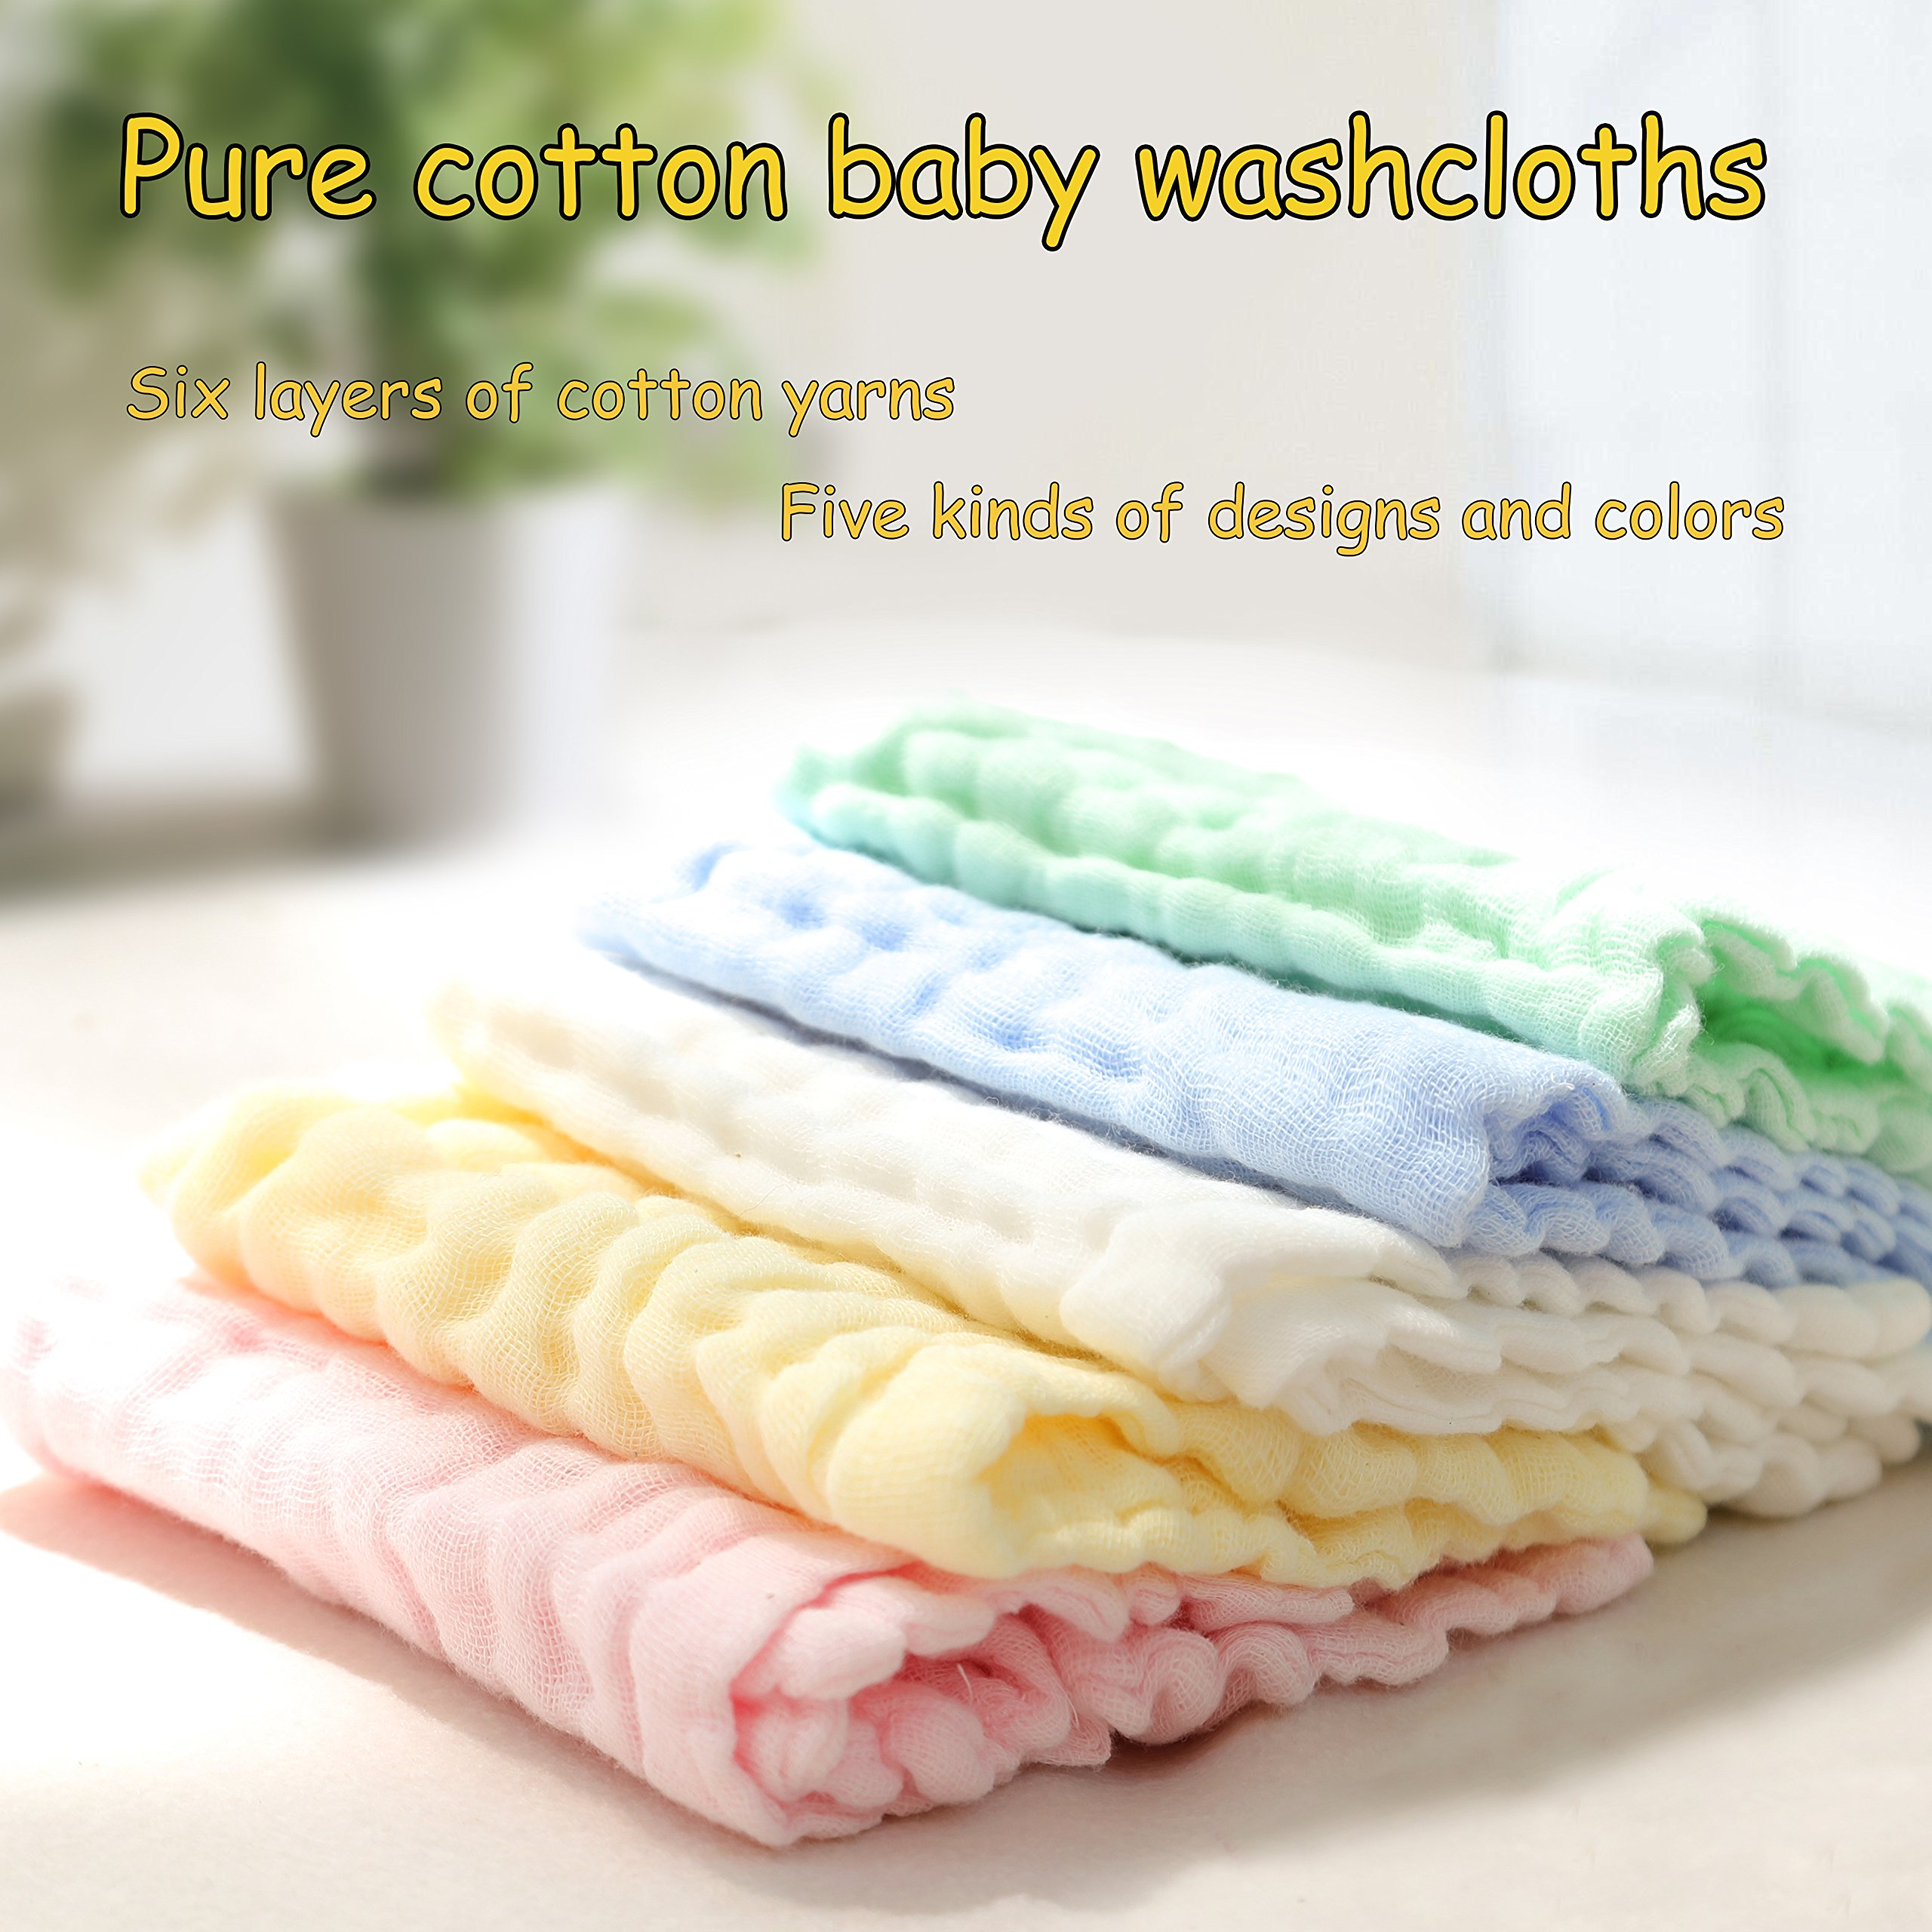 Baby Washcloths - Natural Organic Baby Newborn Face Towel Pure Muslin Cotton Washcloths Absorbent Baby Wipes - Soft Bath Towel for Sensitive Skin Baby Registry as Shower Gift 5 Packs by KRRAMEL